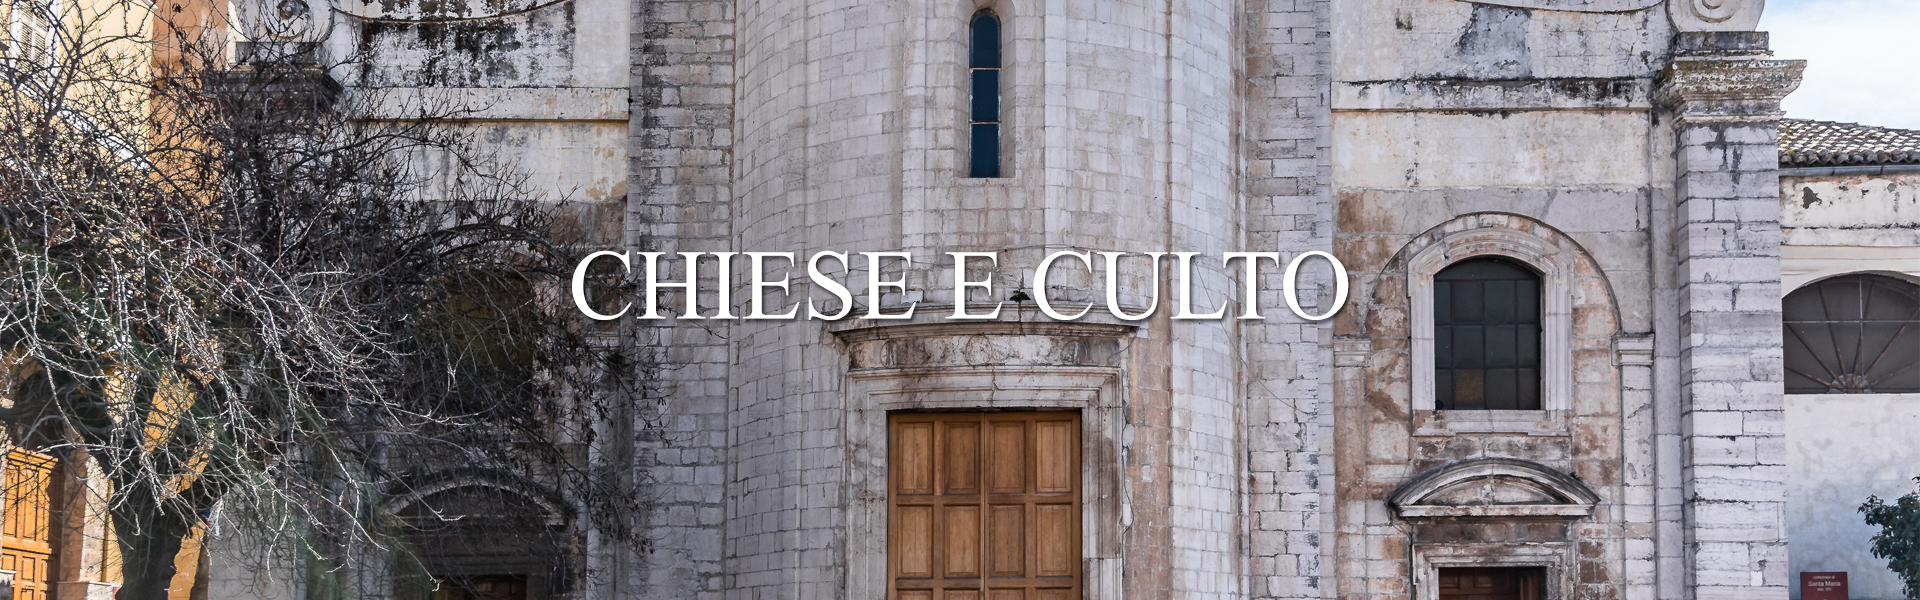 sezze-cultura-chieseeculto-cop-1920x600